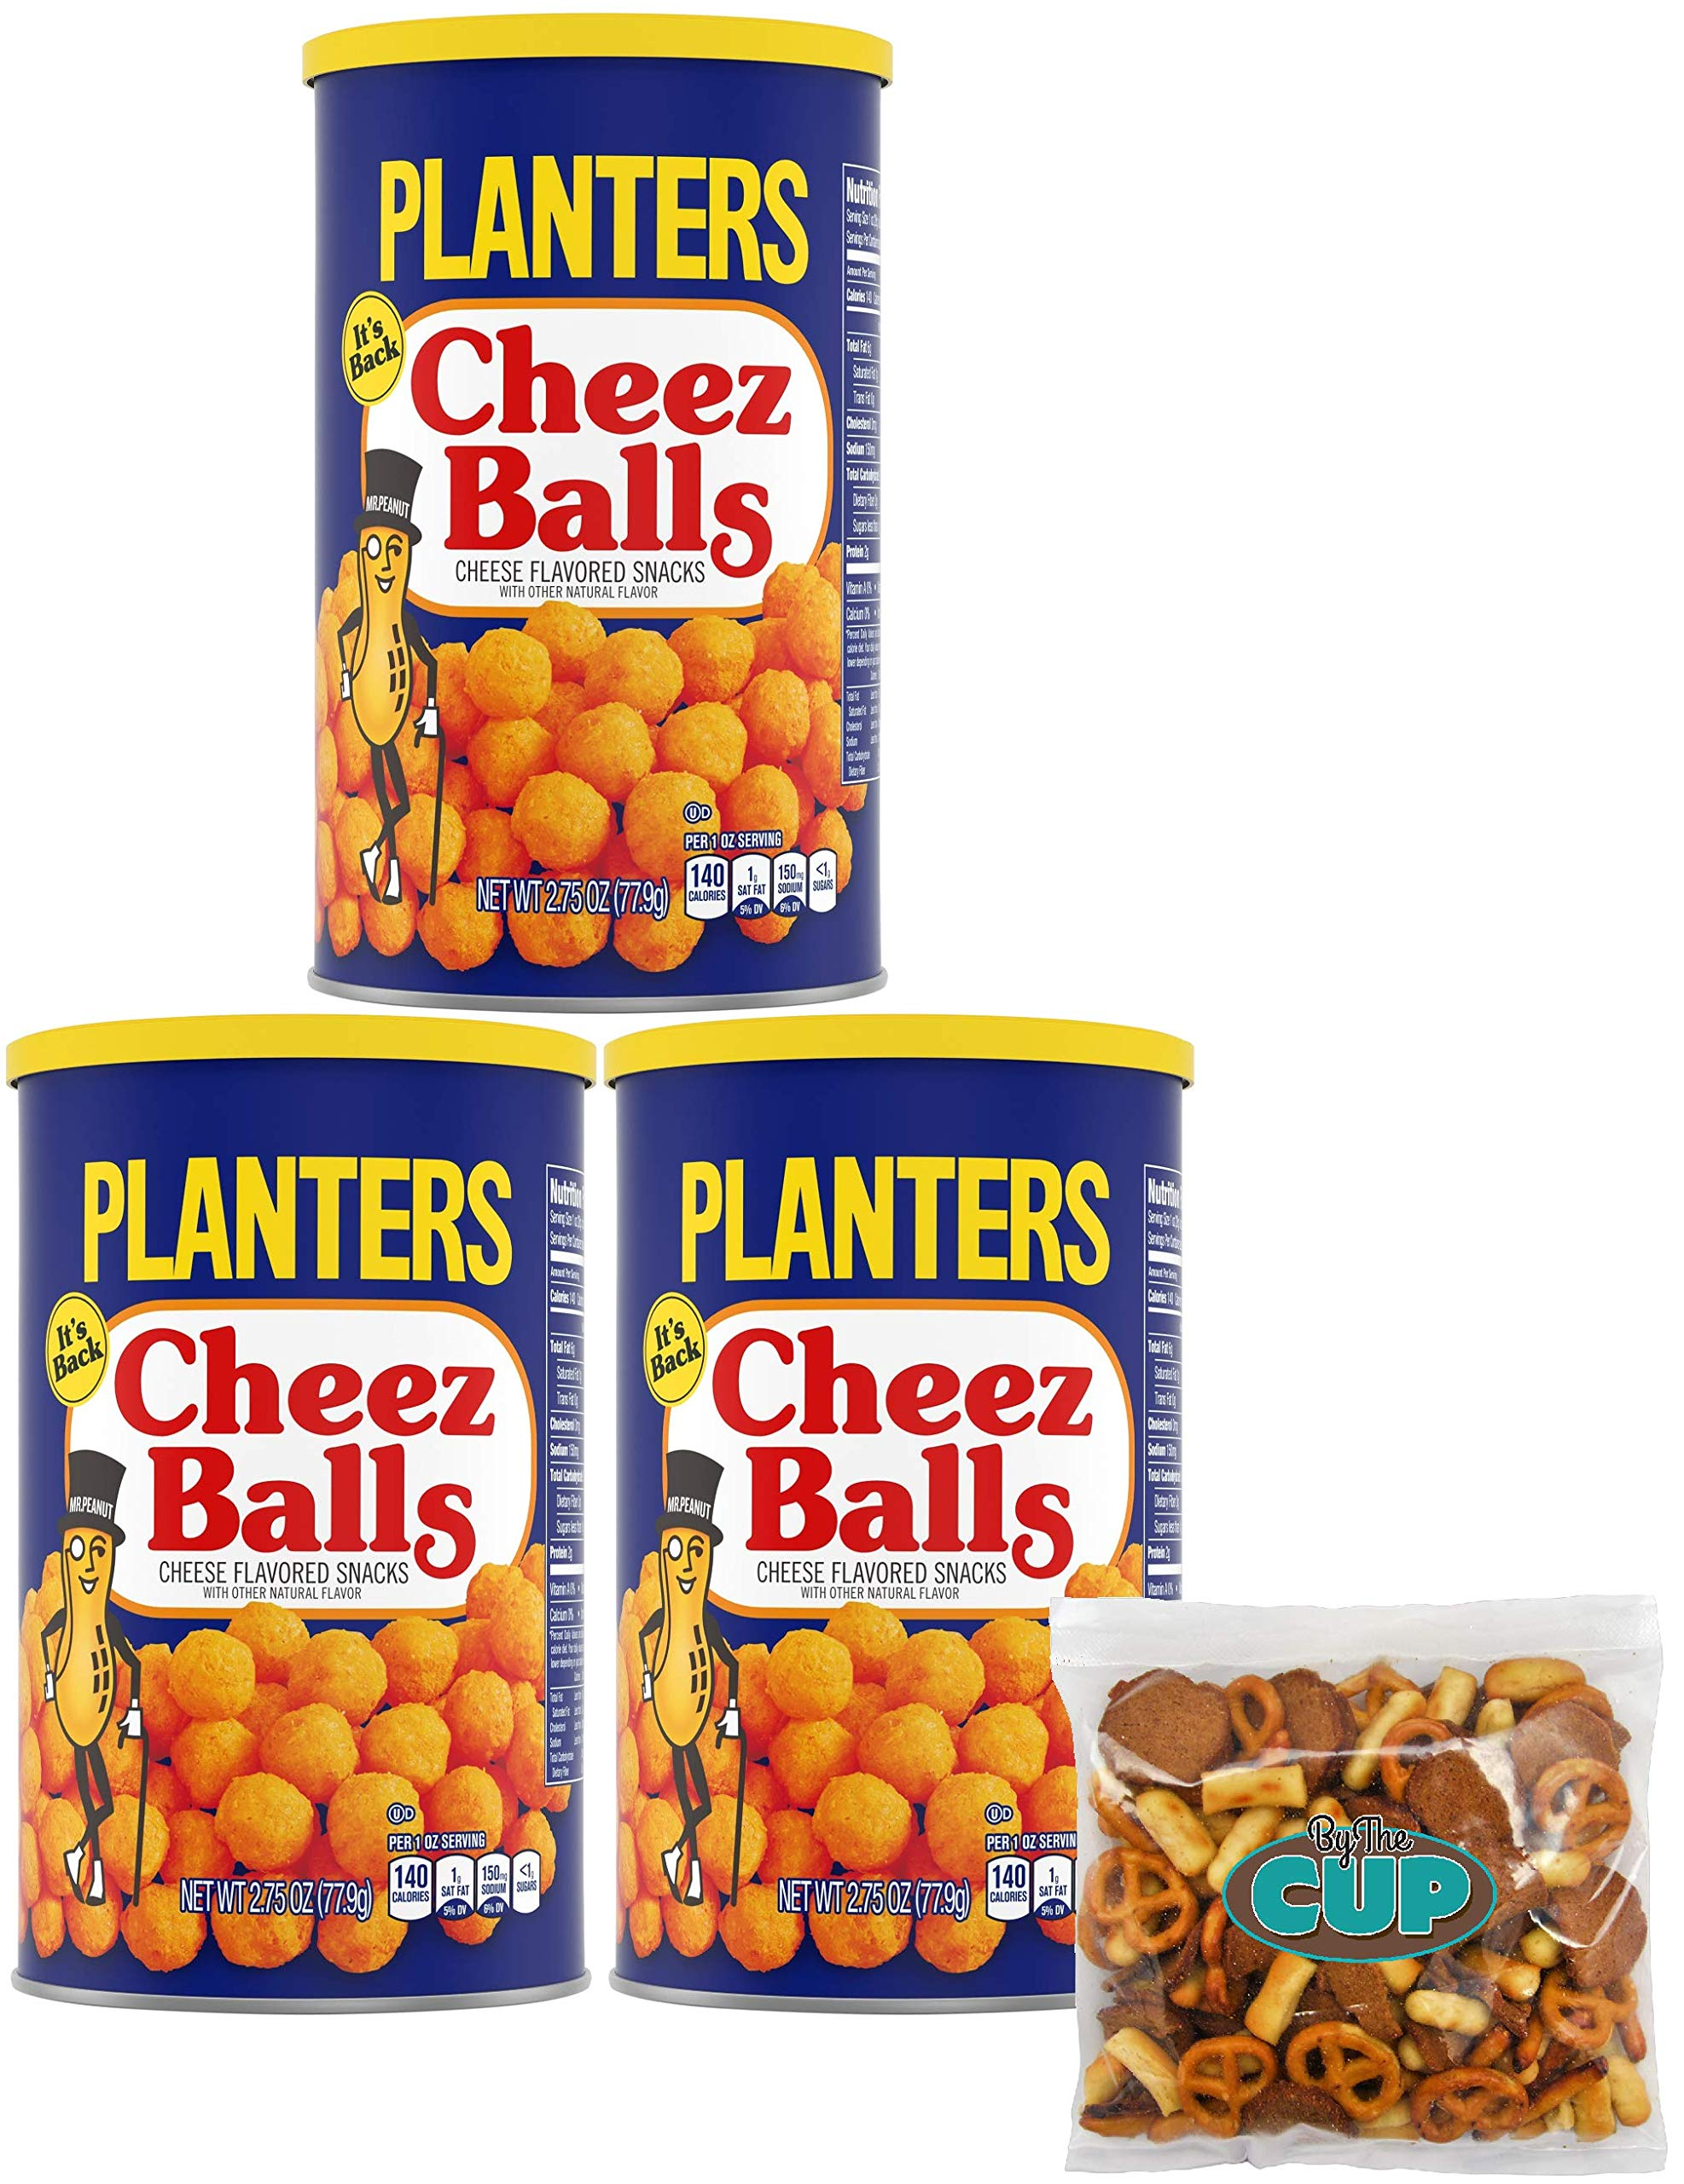 By The Cup Snack Pack - Planters Cheez Balls 2.75 Ounce Canister (Pack of 3) - with By The Cup Snack Mix by By The Cup